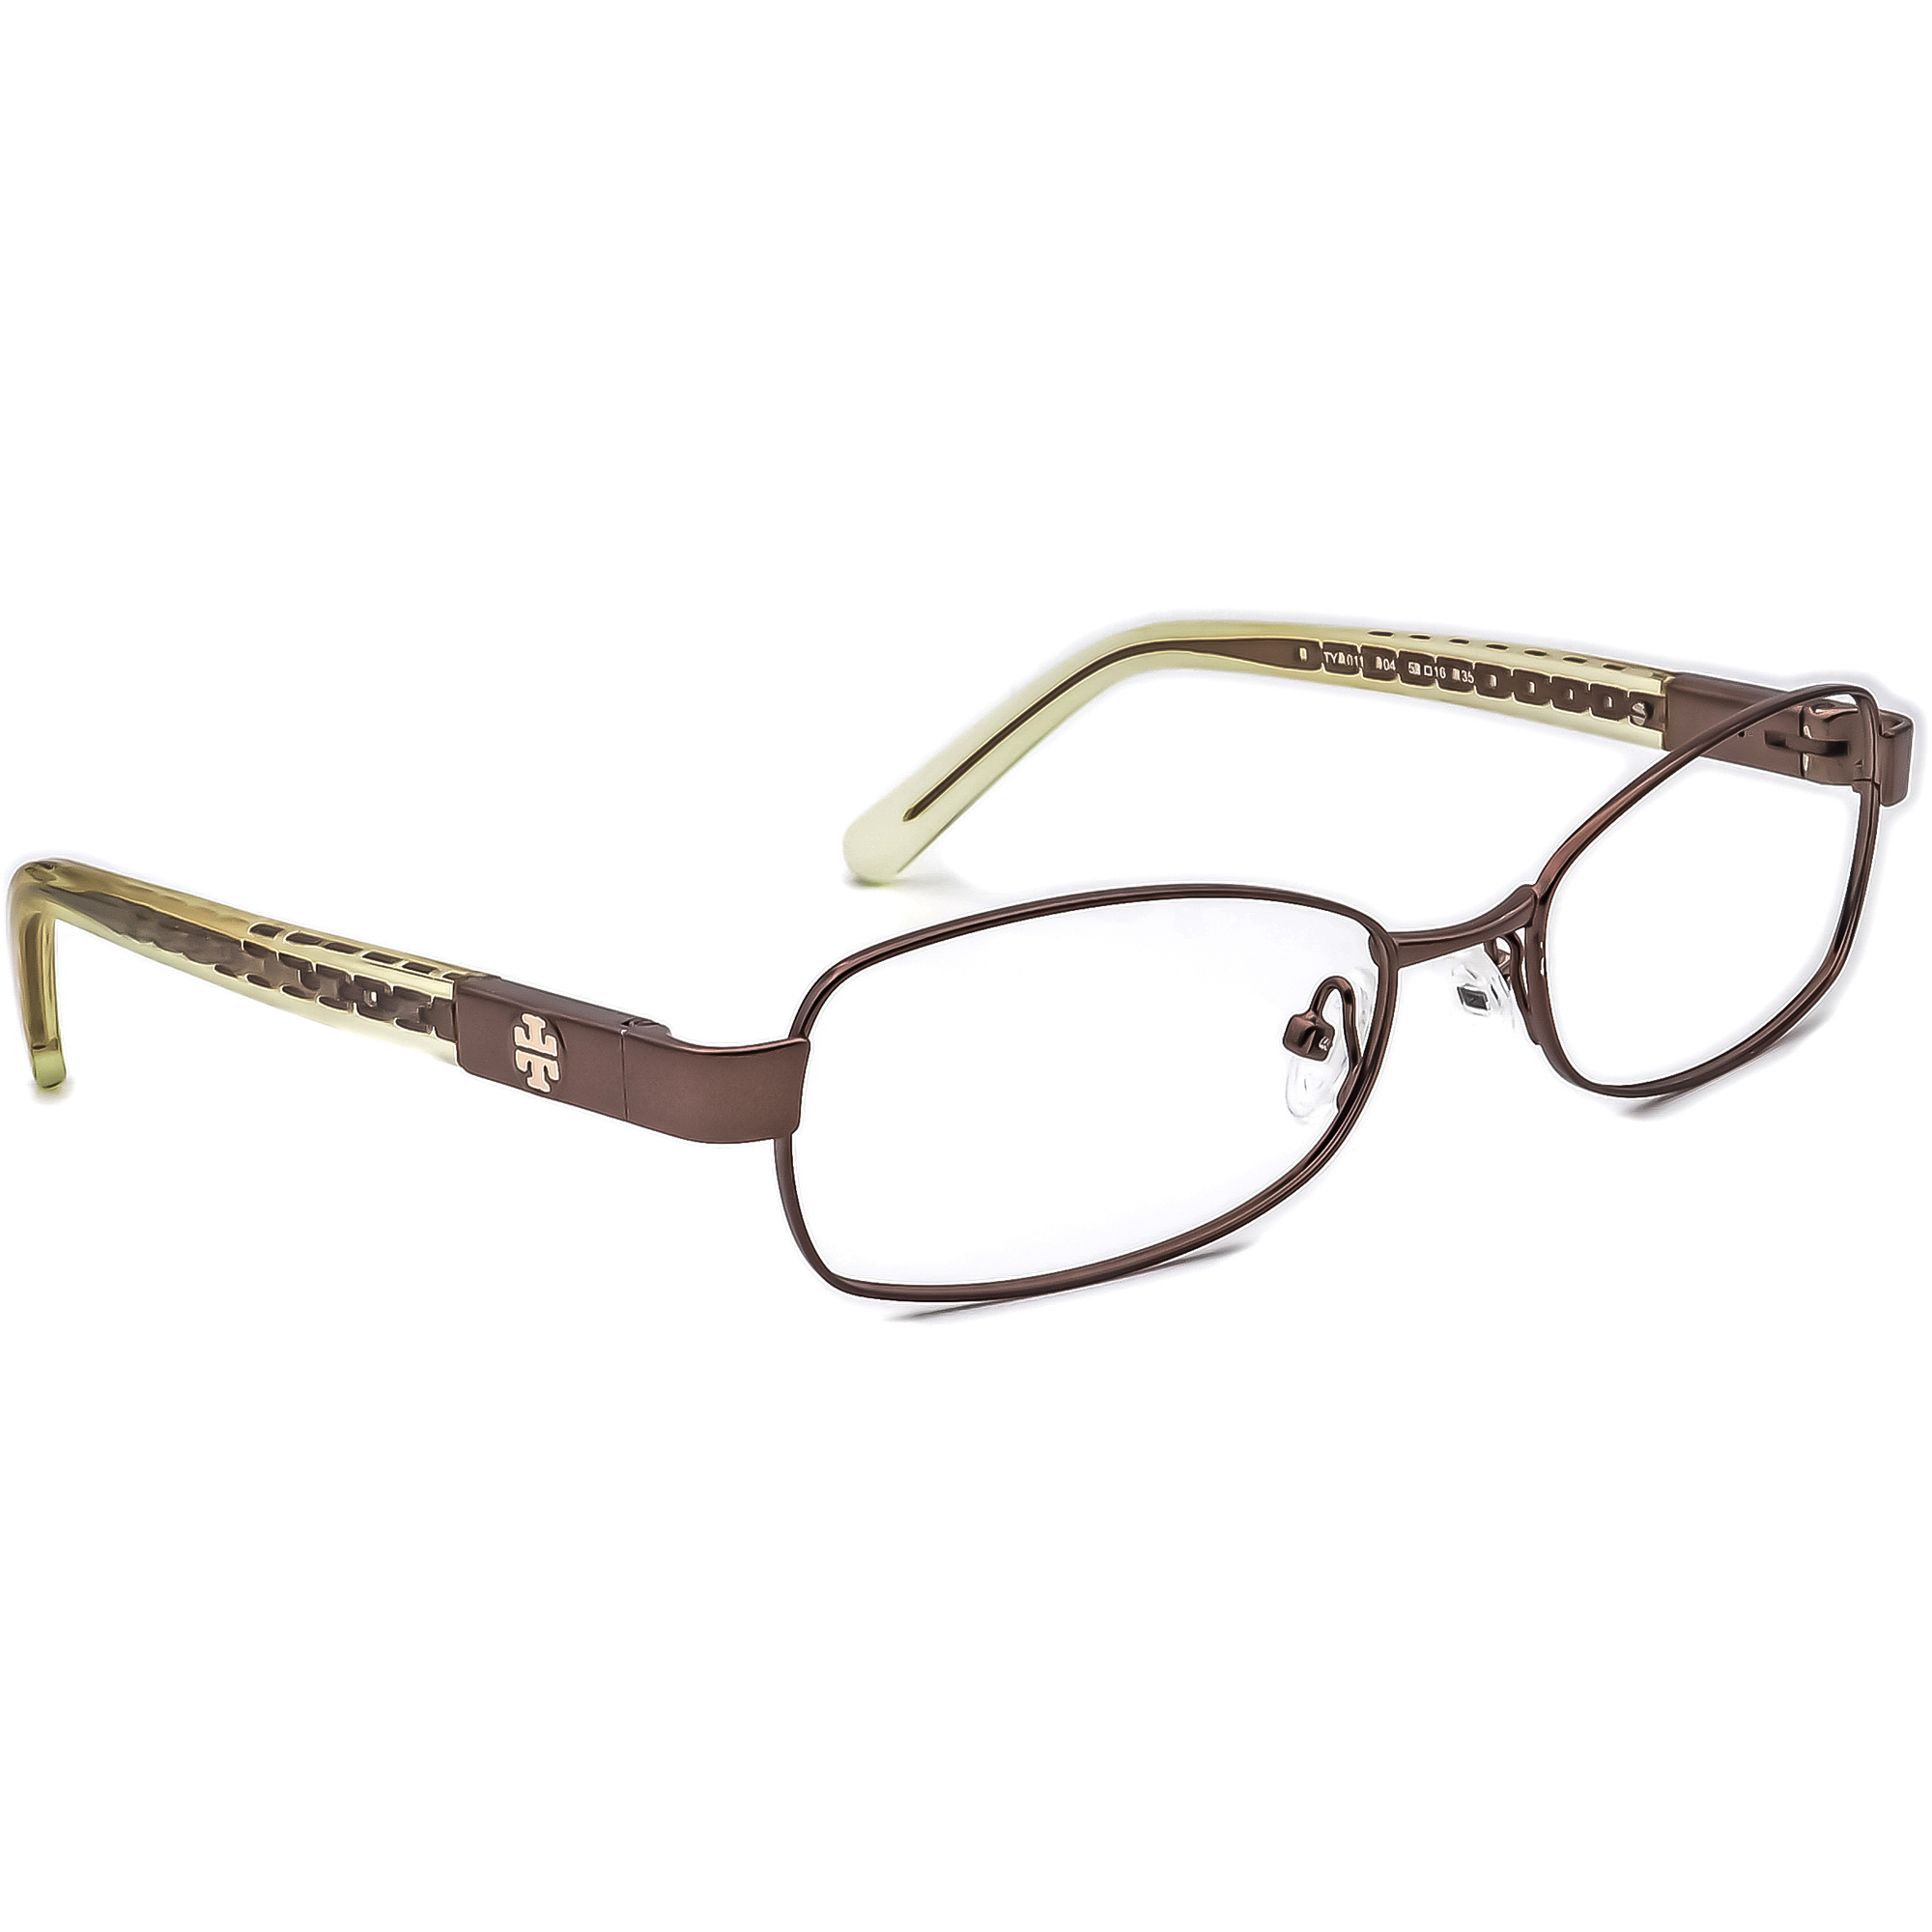 Tory Burch TY 1011 104 Eyeglasses